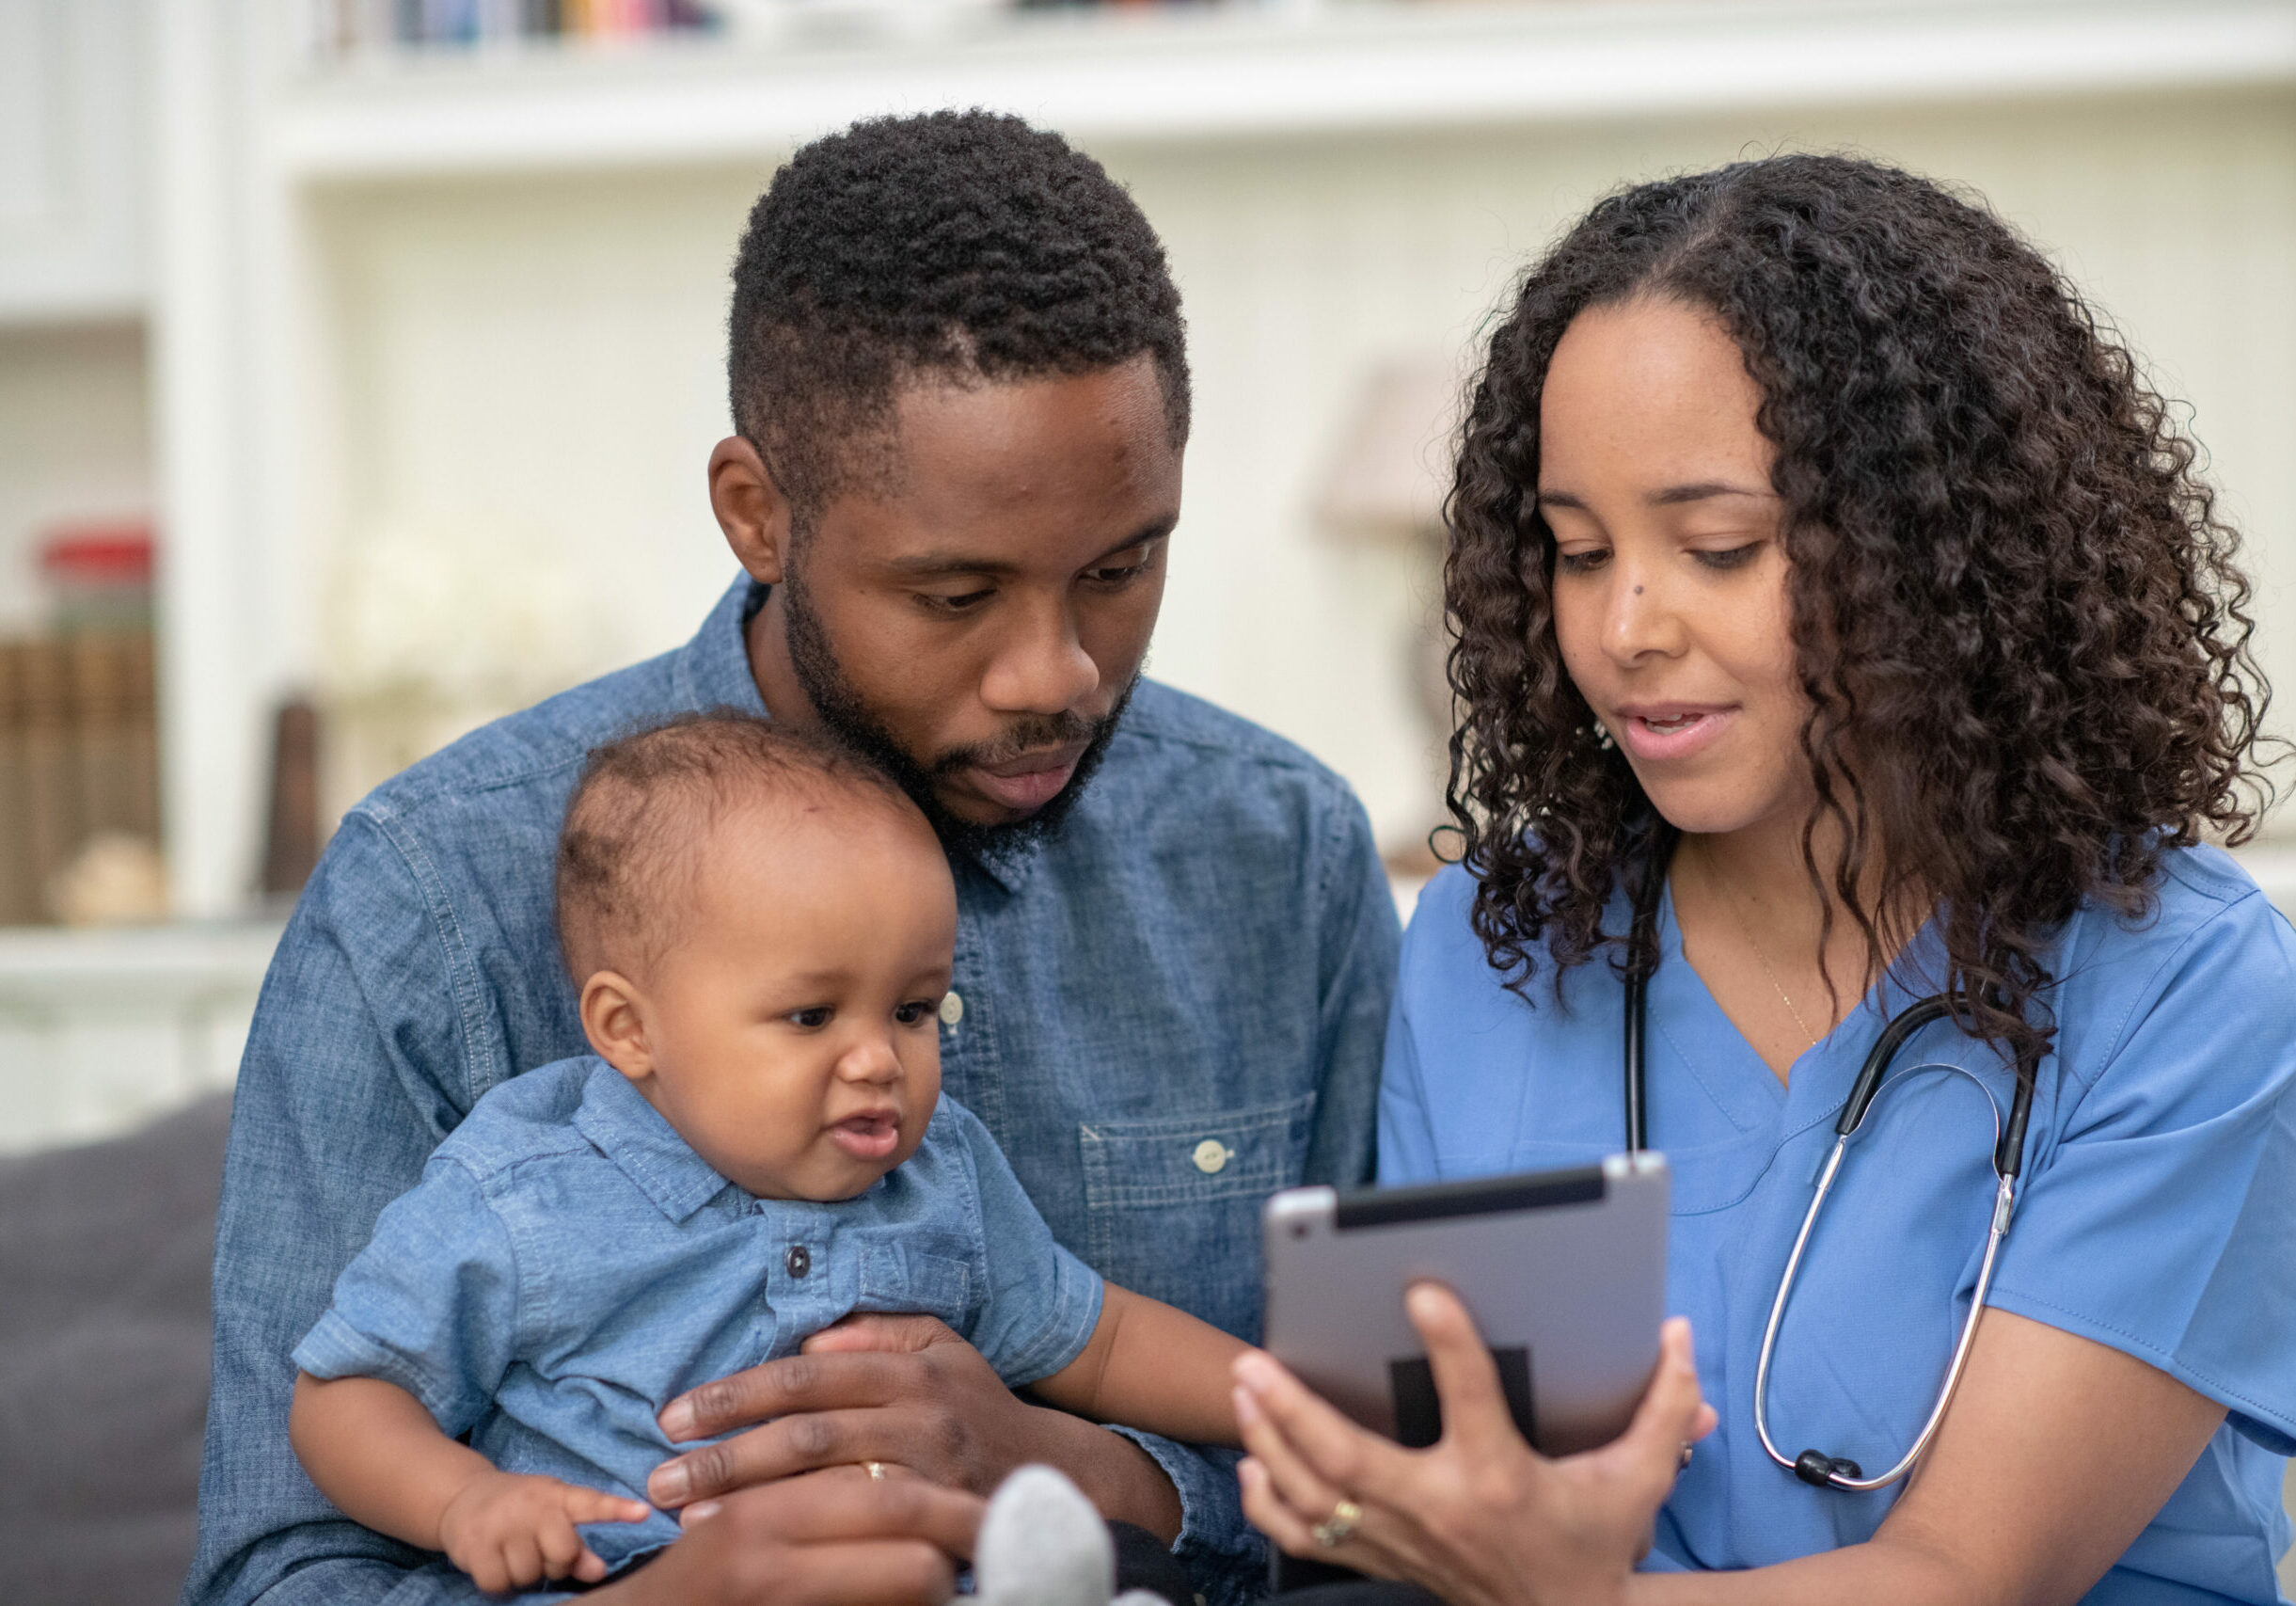 A female doctor of African descent is checking on a patient at their home. They are meeting in the family's living room. The patient is a toddler girl. The child is sitting on her father's lap. The doctor is holding a tablet computer.